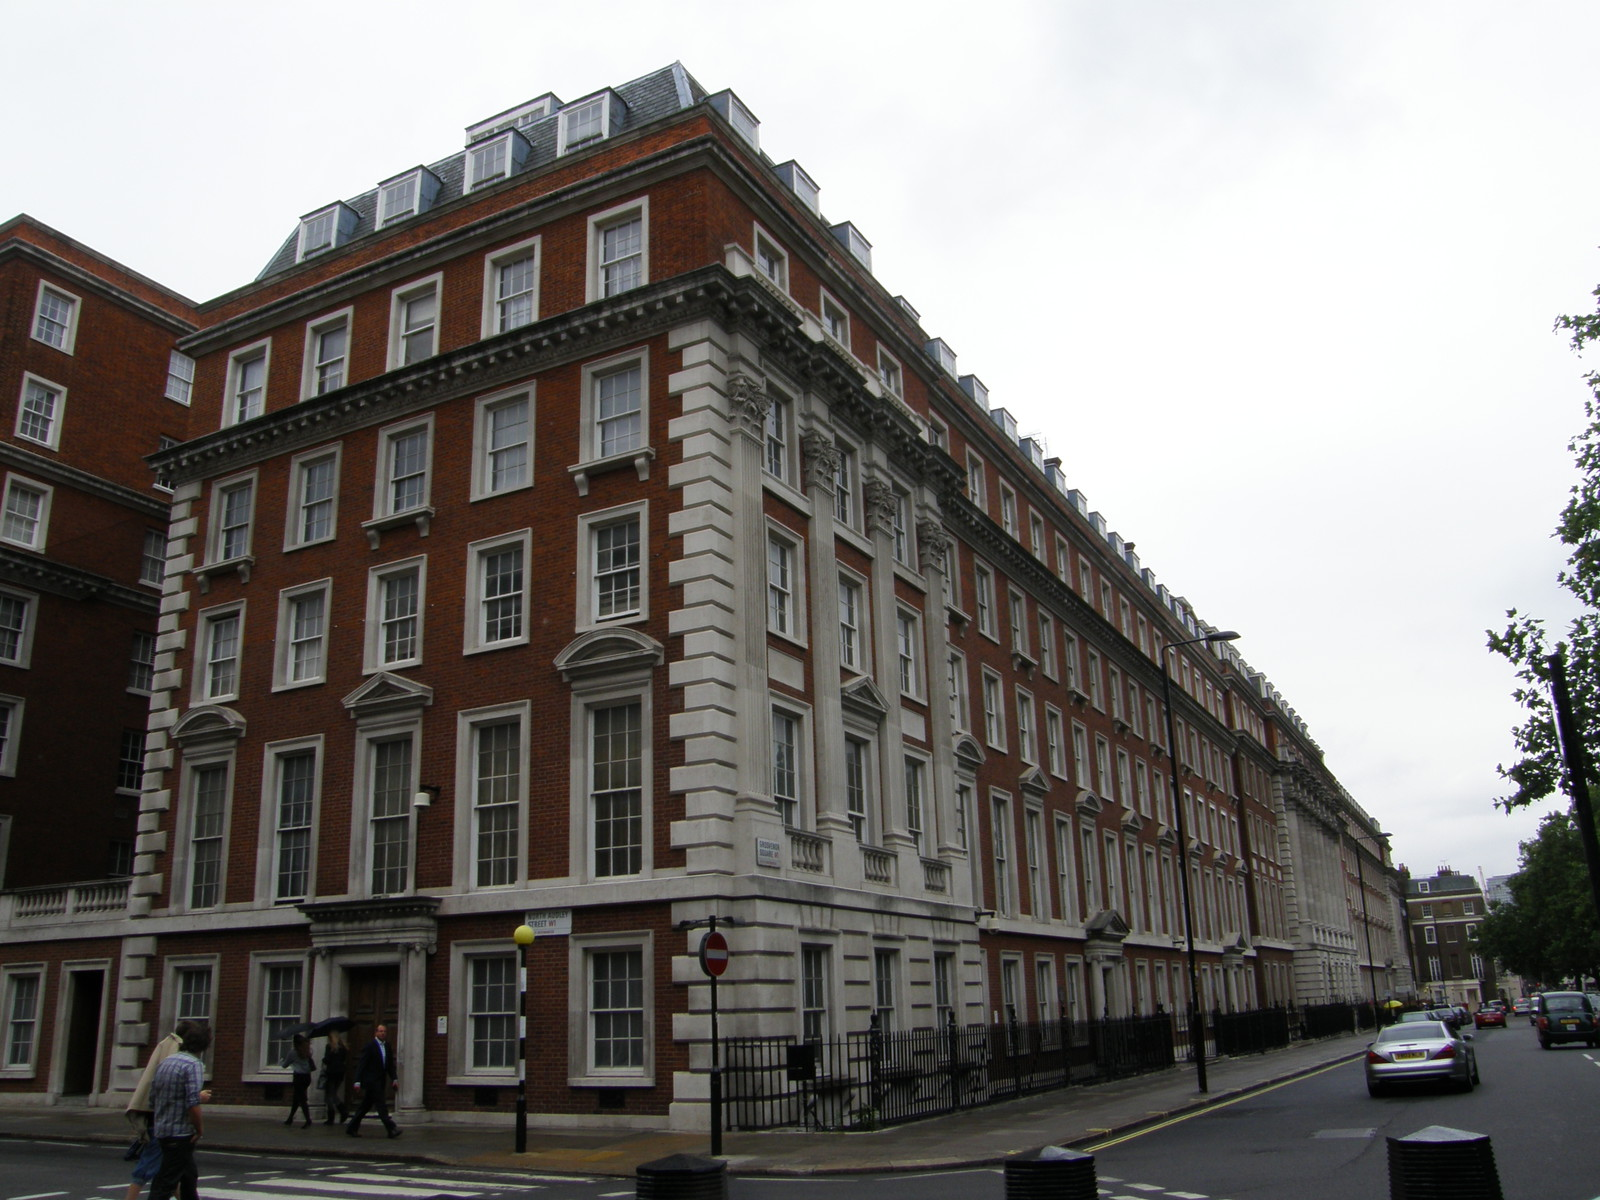 A mansion block in Mayfair